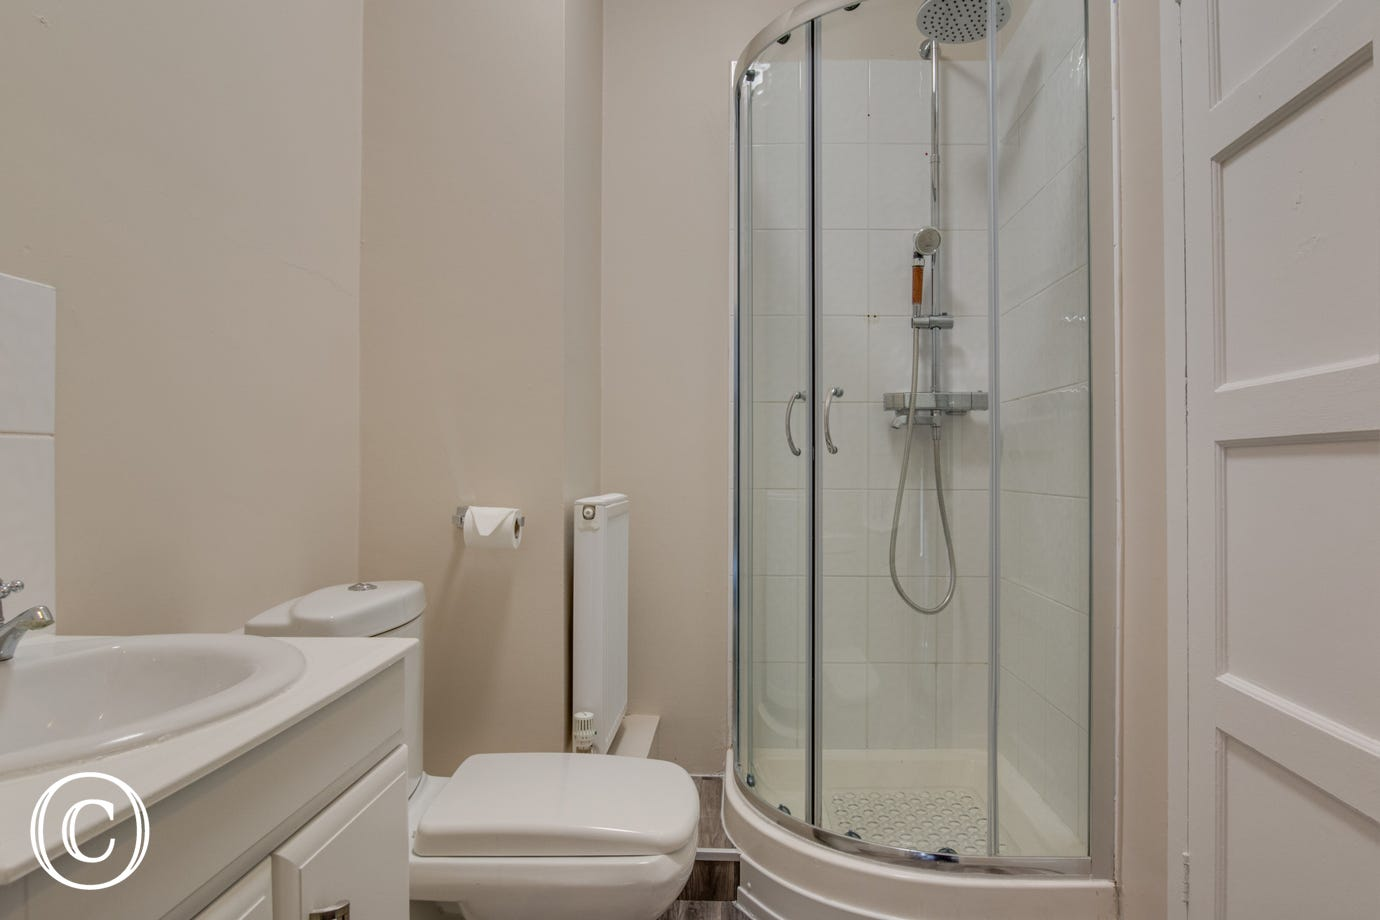 Bedroom 4 Ensuite with shower cubicle, washbasin & wc